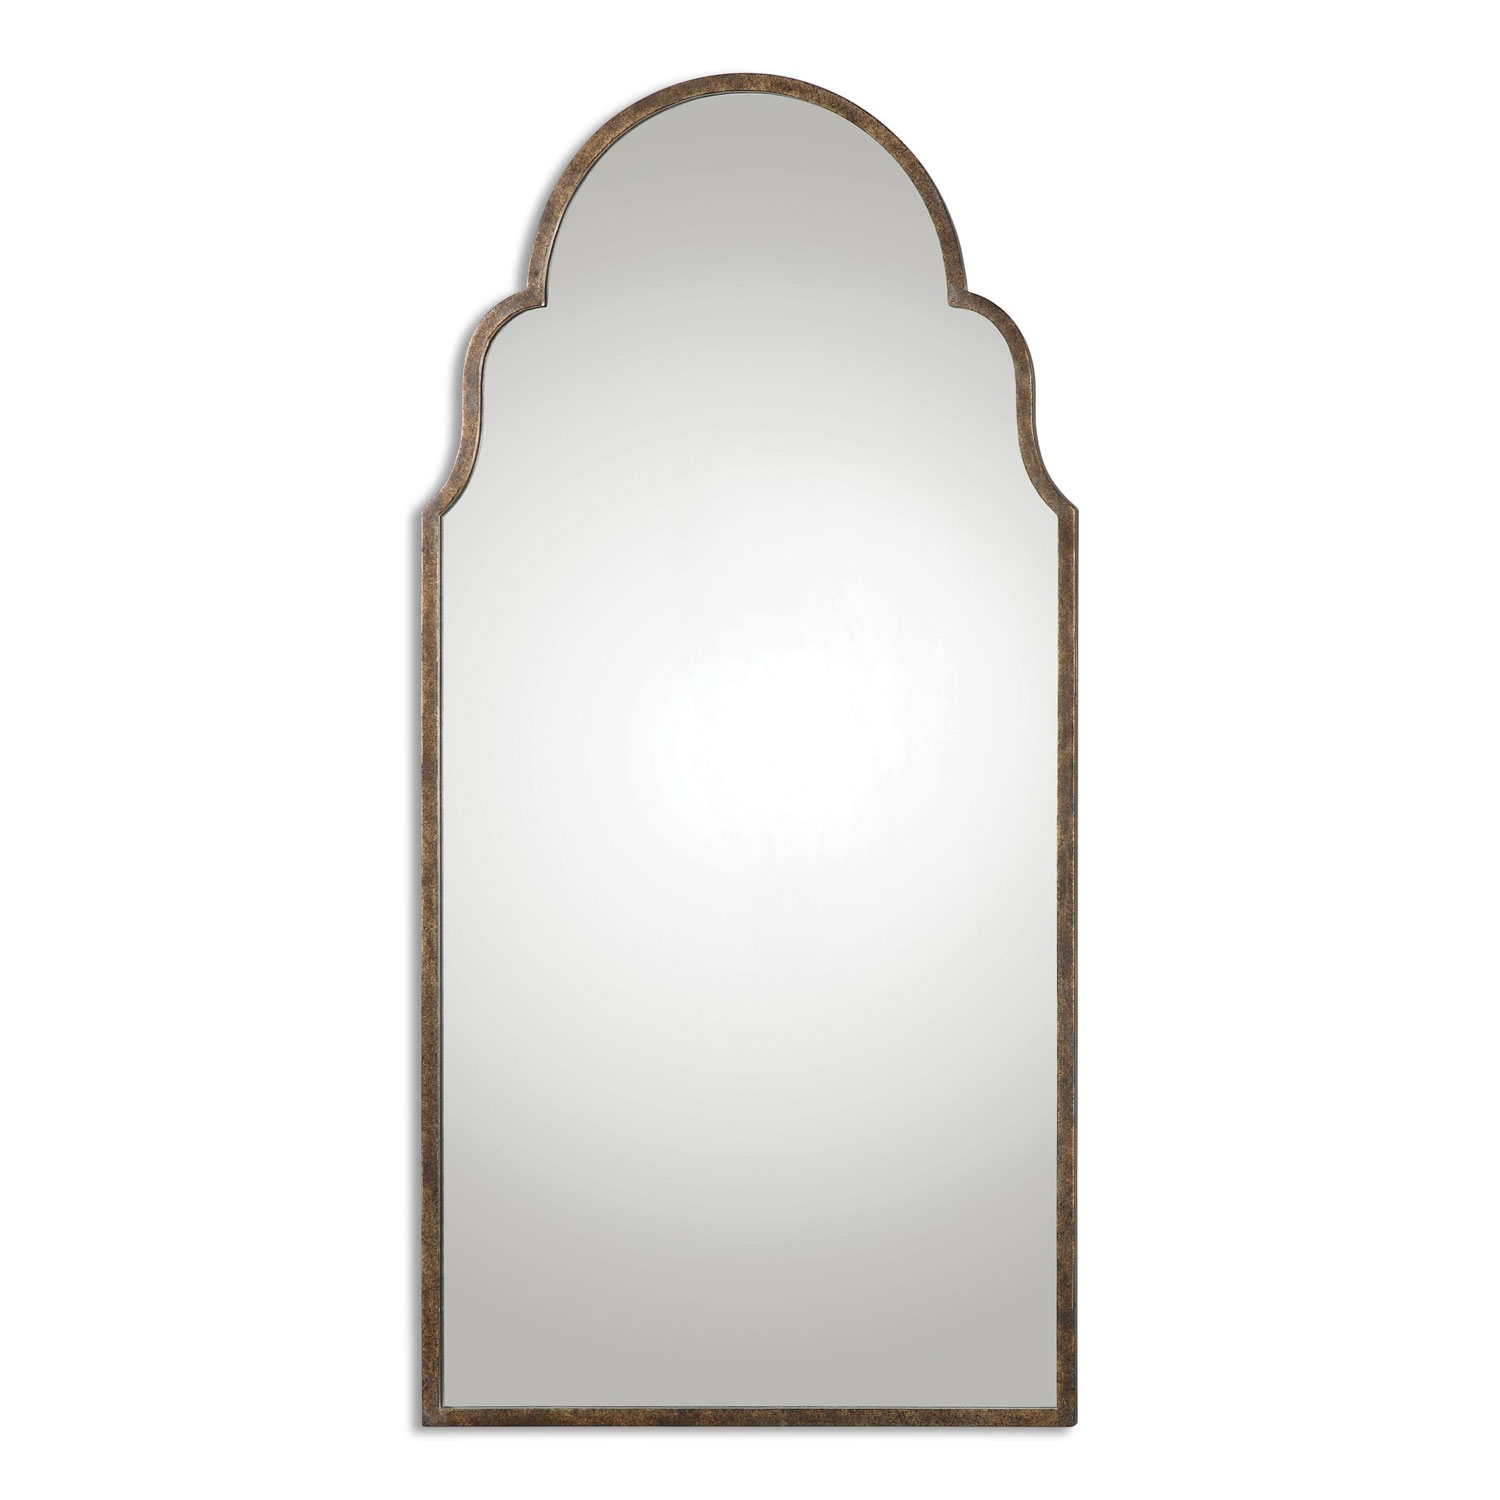 Black Arched Wall Mirrors